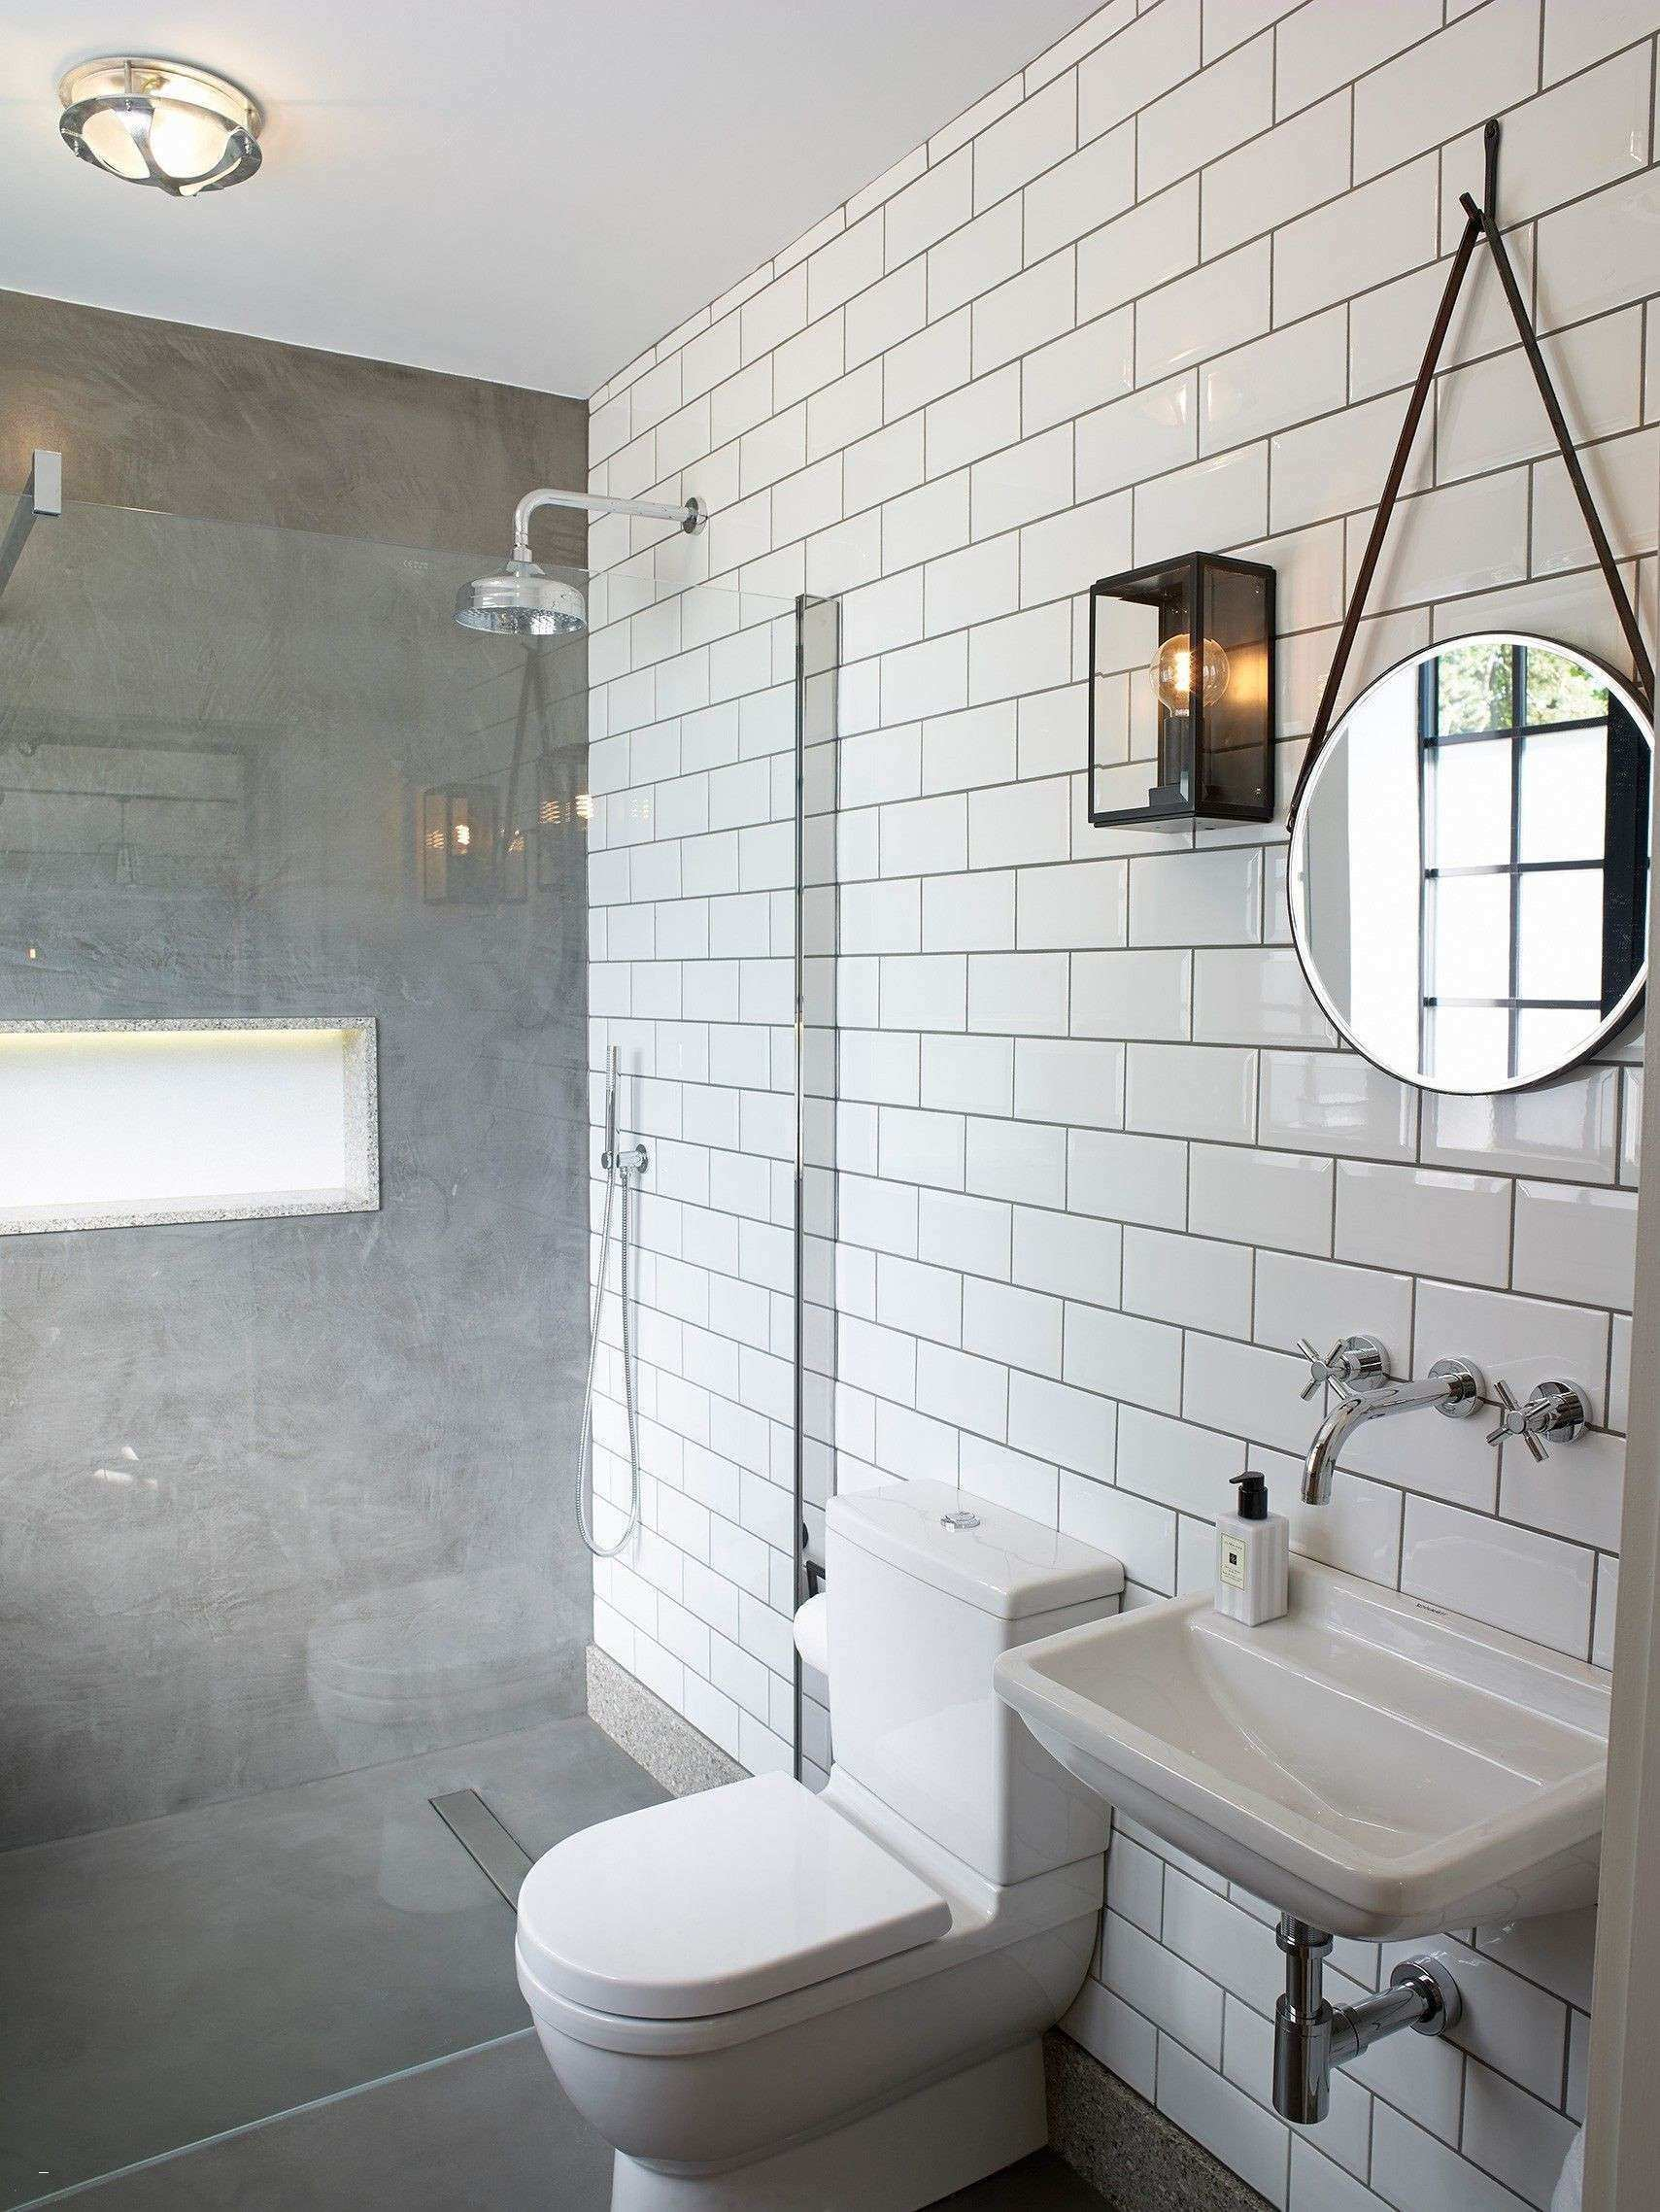 Diy Projects with toilet Paper Rolls Elegant Bathrooms toilet Paper